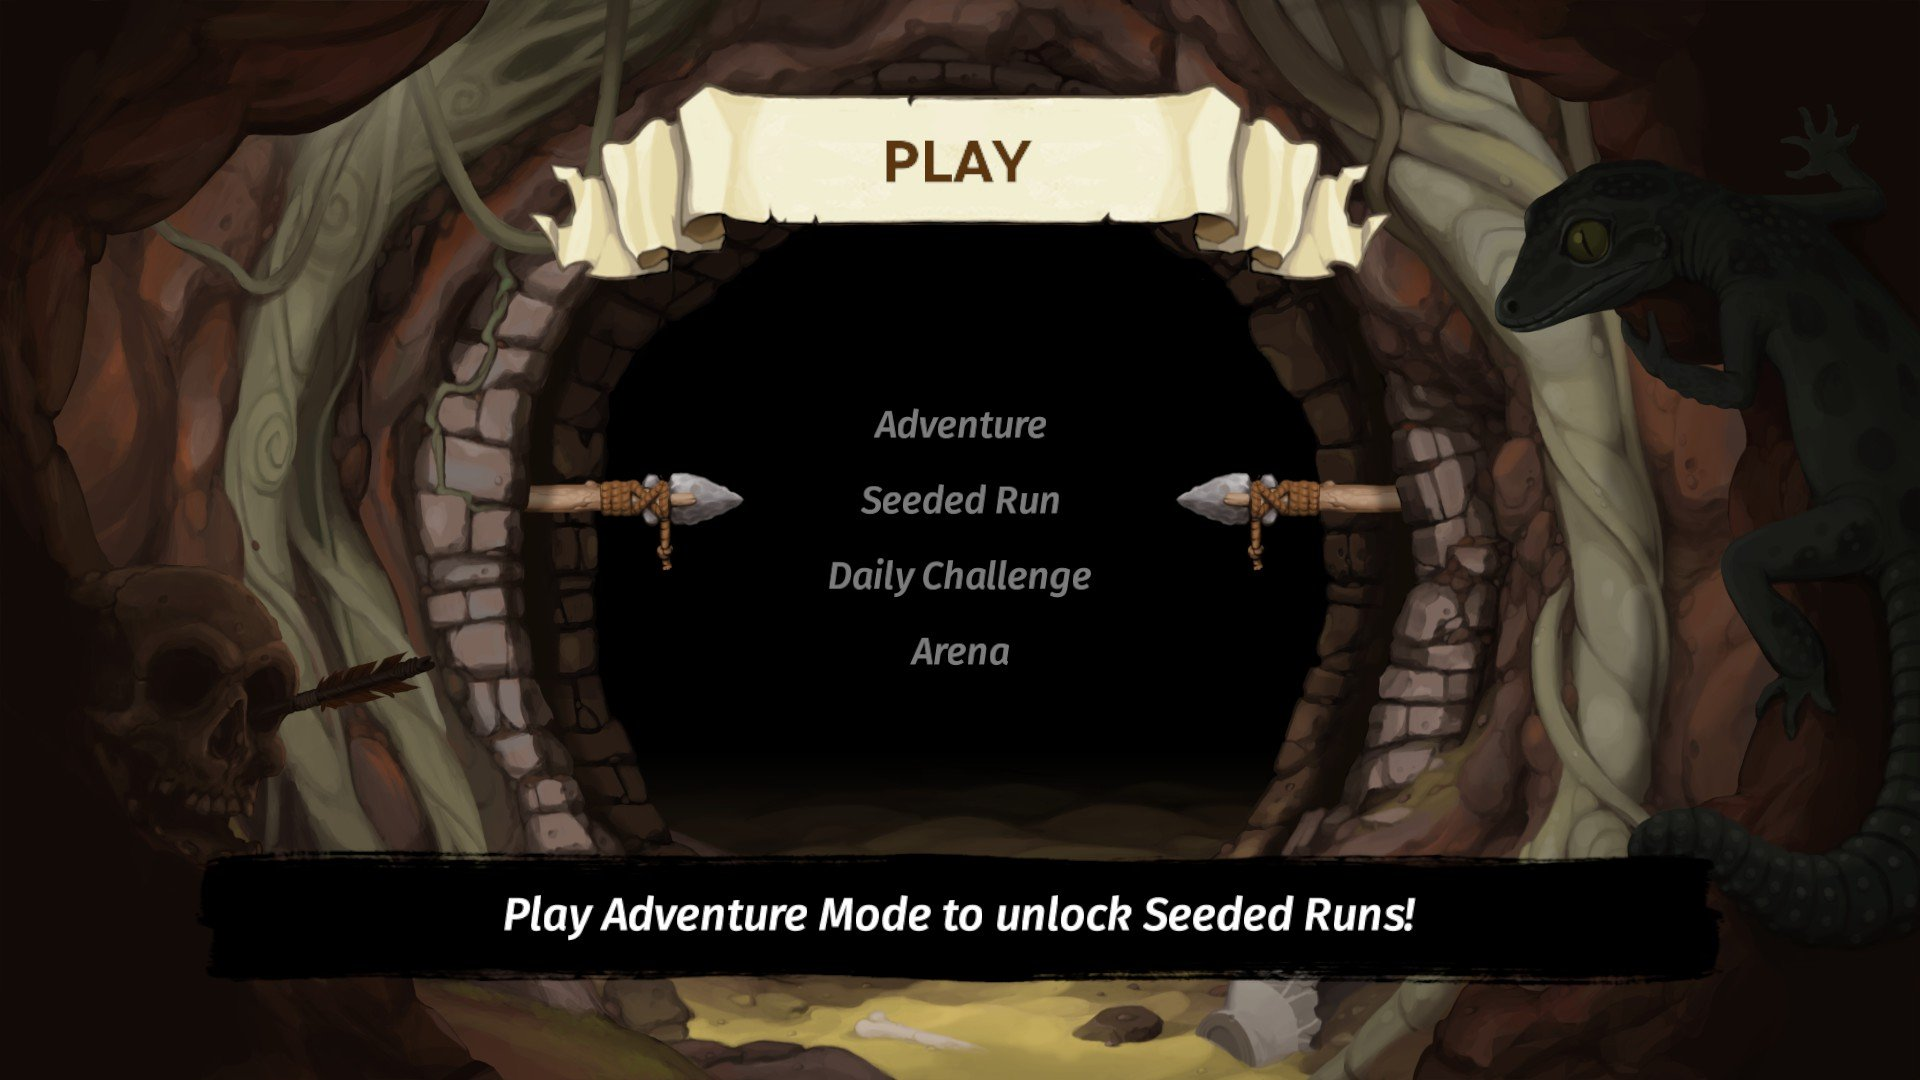 Spelunky 2 - How to Unlock Seeded Runs